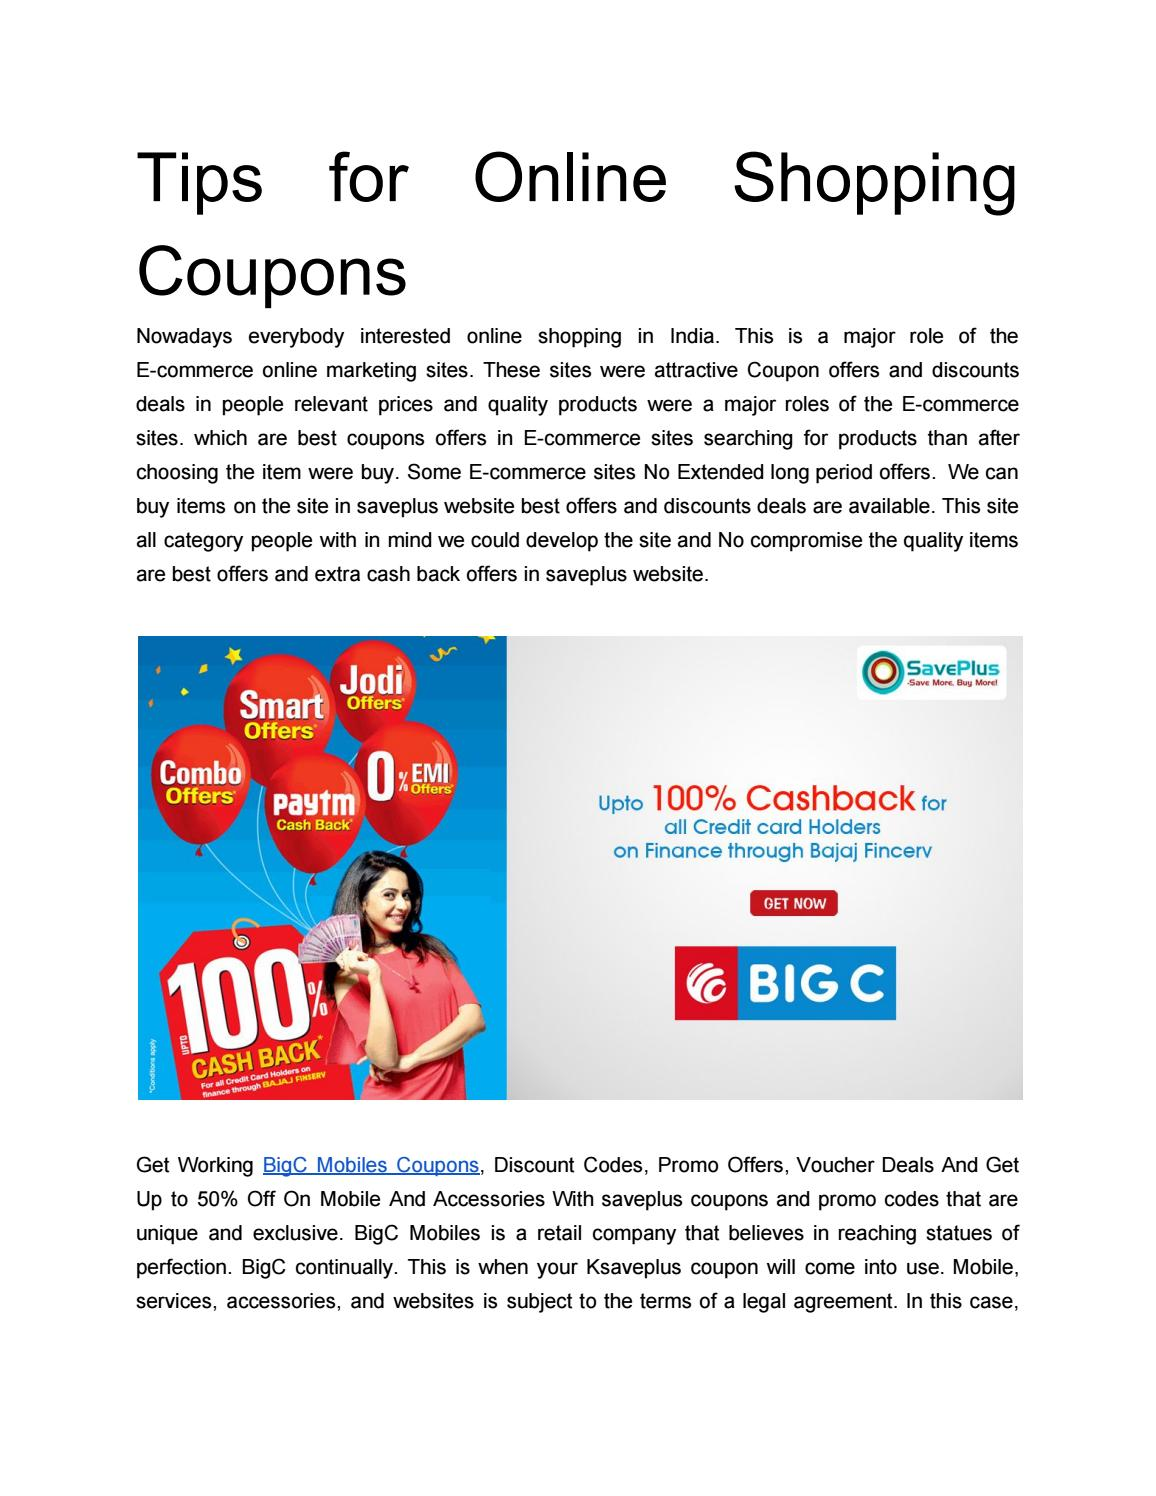 Tips For Online Shopping Coupons By Saveplus21 Issuu